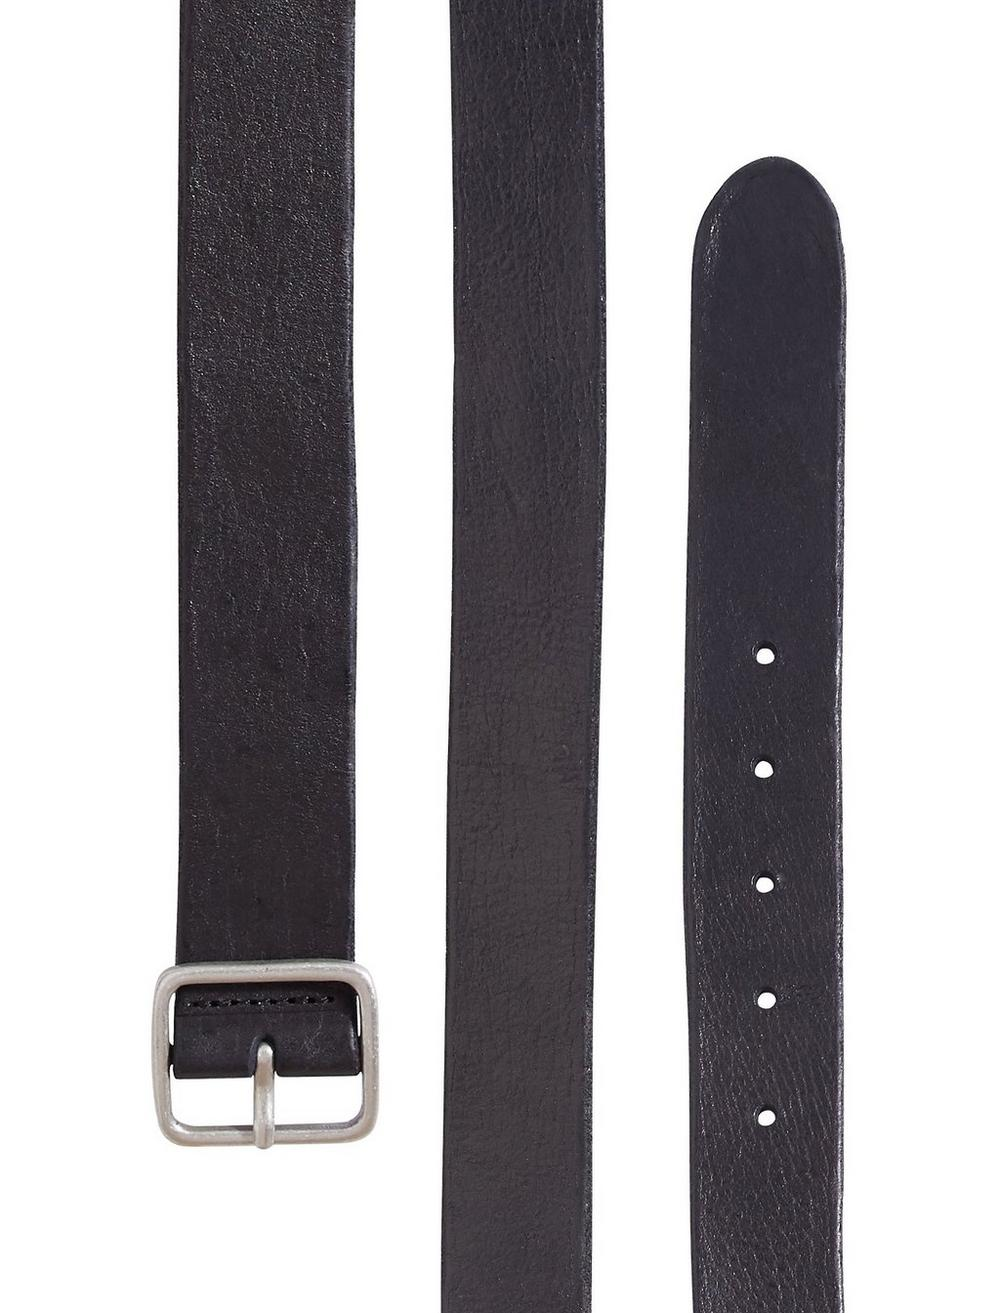 THE POINT BELT, image 2